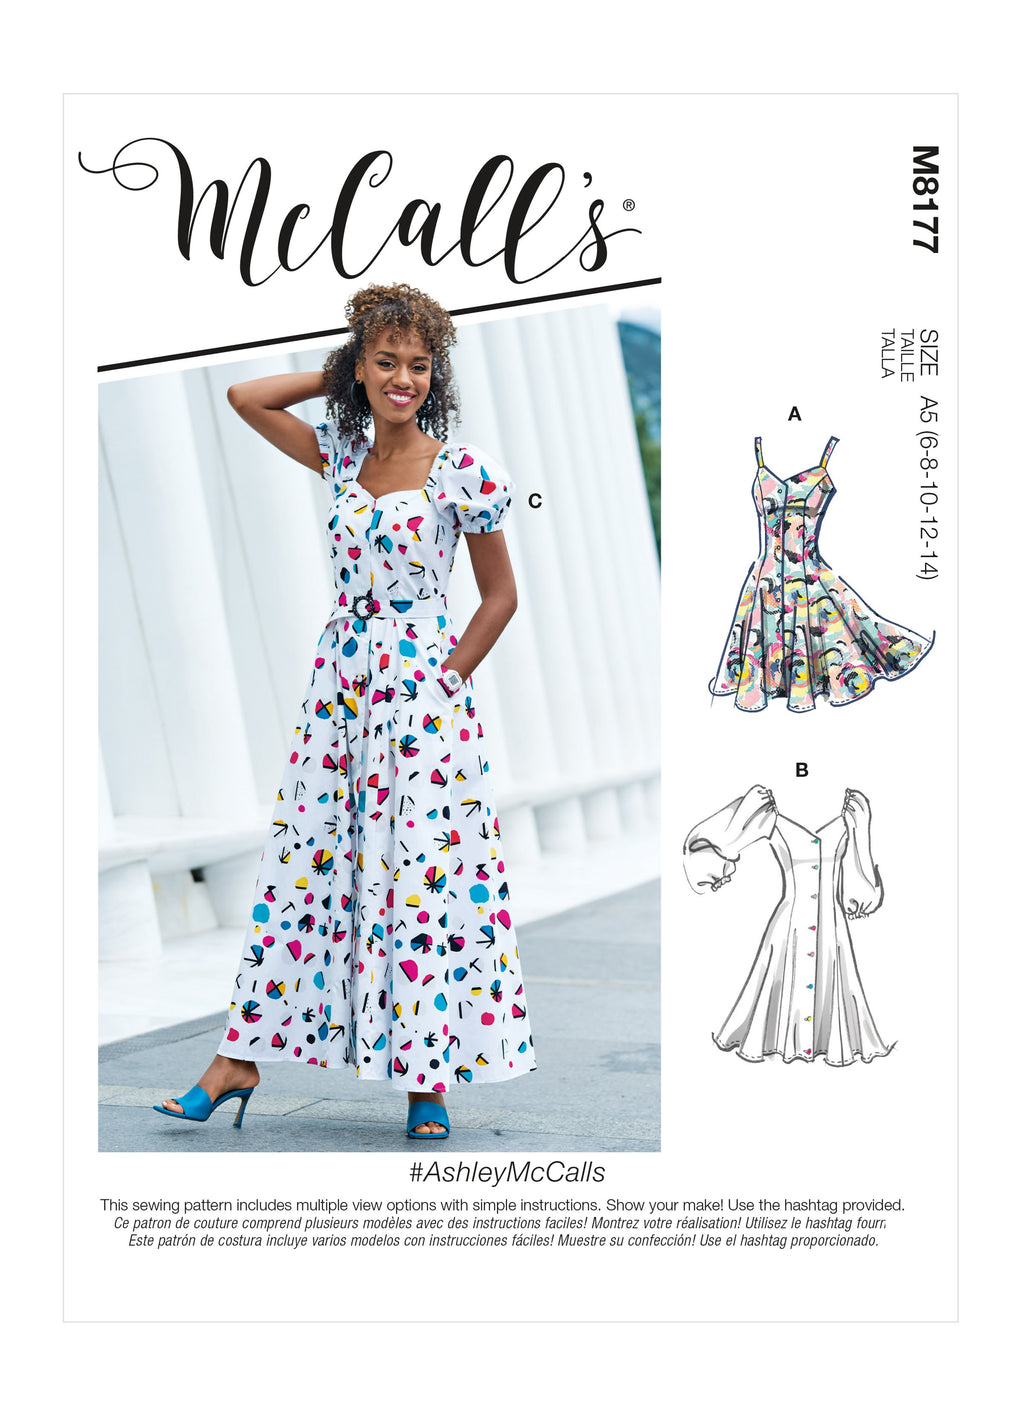 McCalls Sewing Pattern 8177 Misses' Dresses and Belt from Jaycotts Sewing Supplies